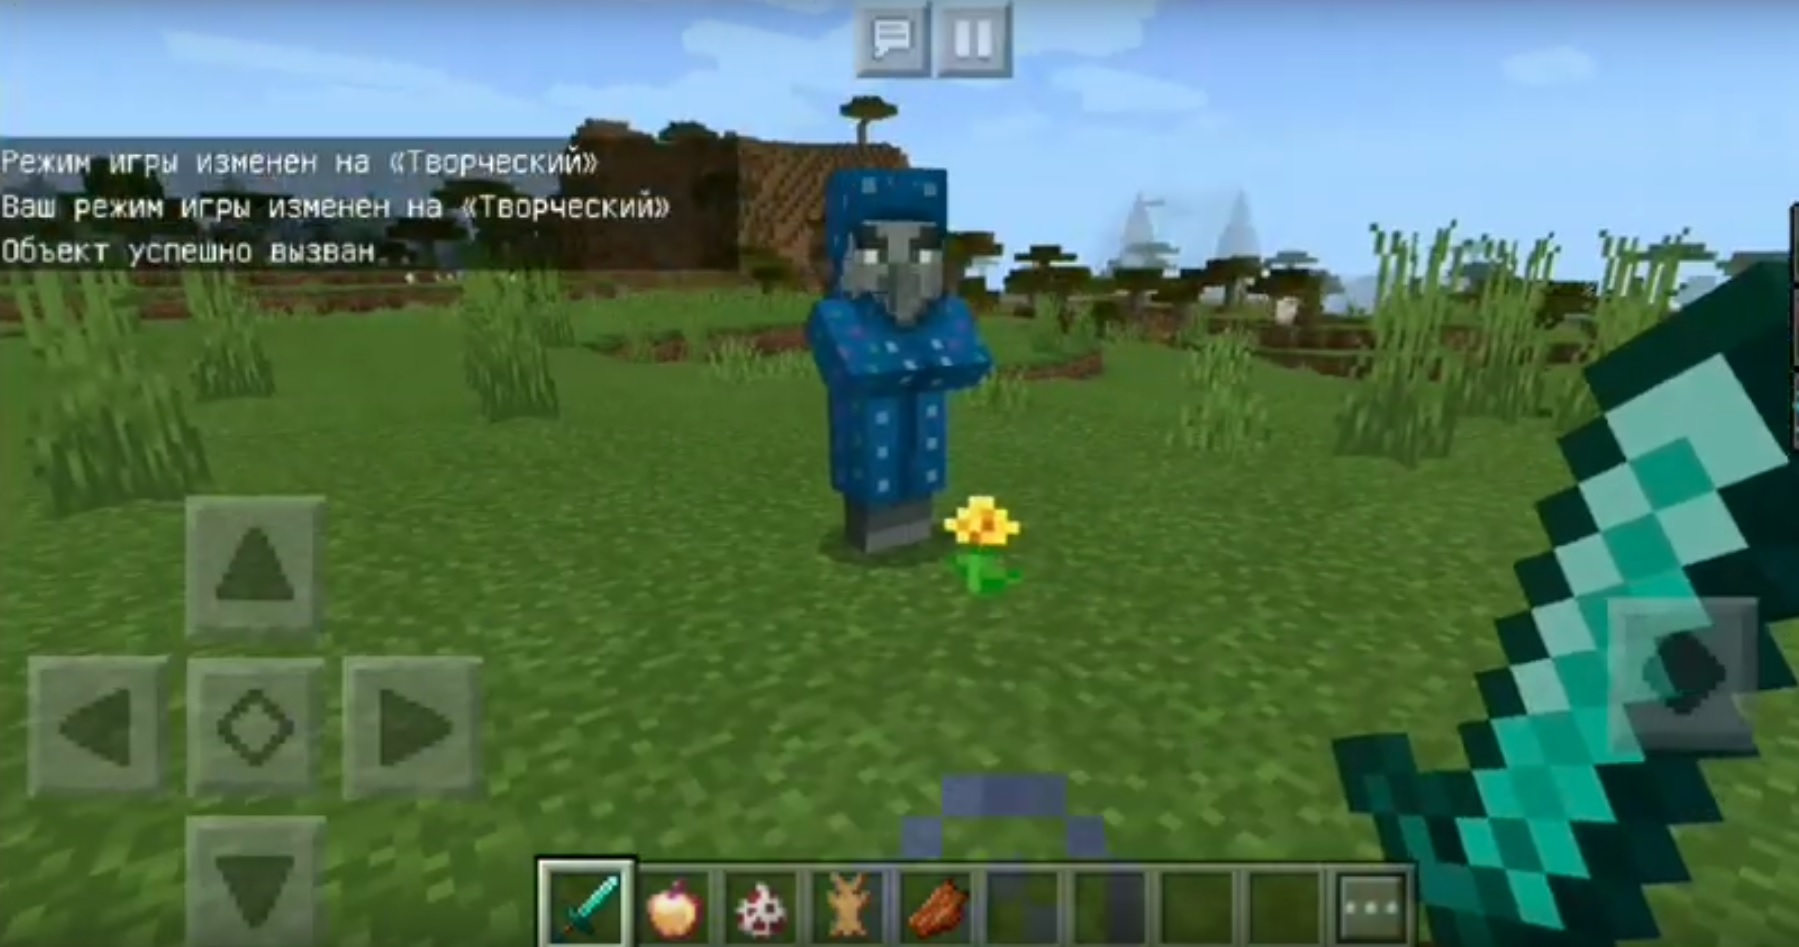 Download Minecraft Bedrock 1.9.0.5 Beta for Android ...